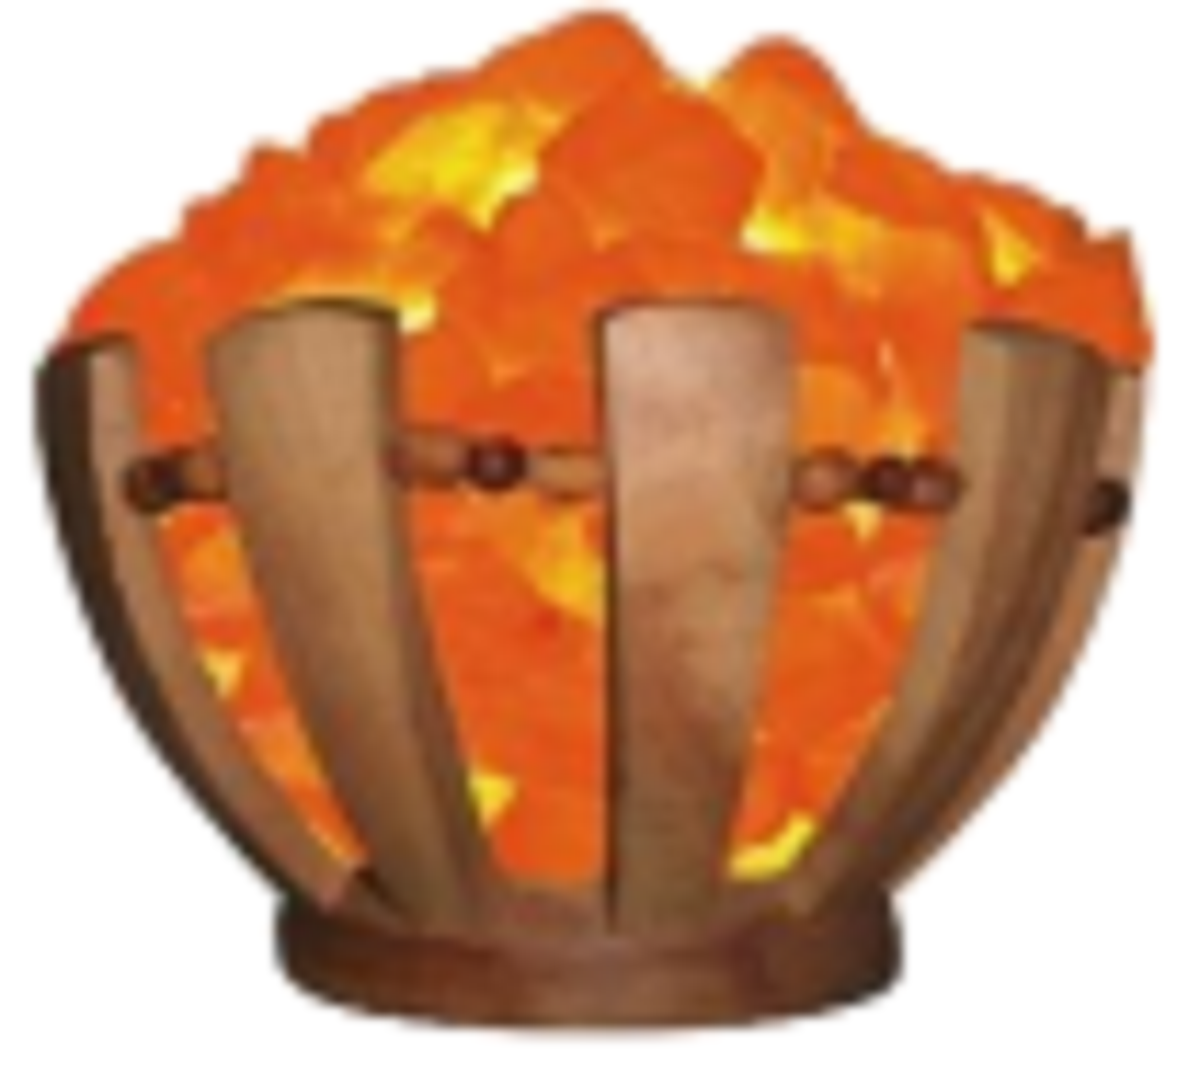 SUMBAL SALT LAMPS WOODEN BASKET WITH CHUNKS 7LBS ZRS 678